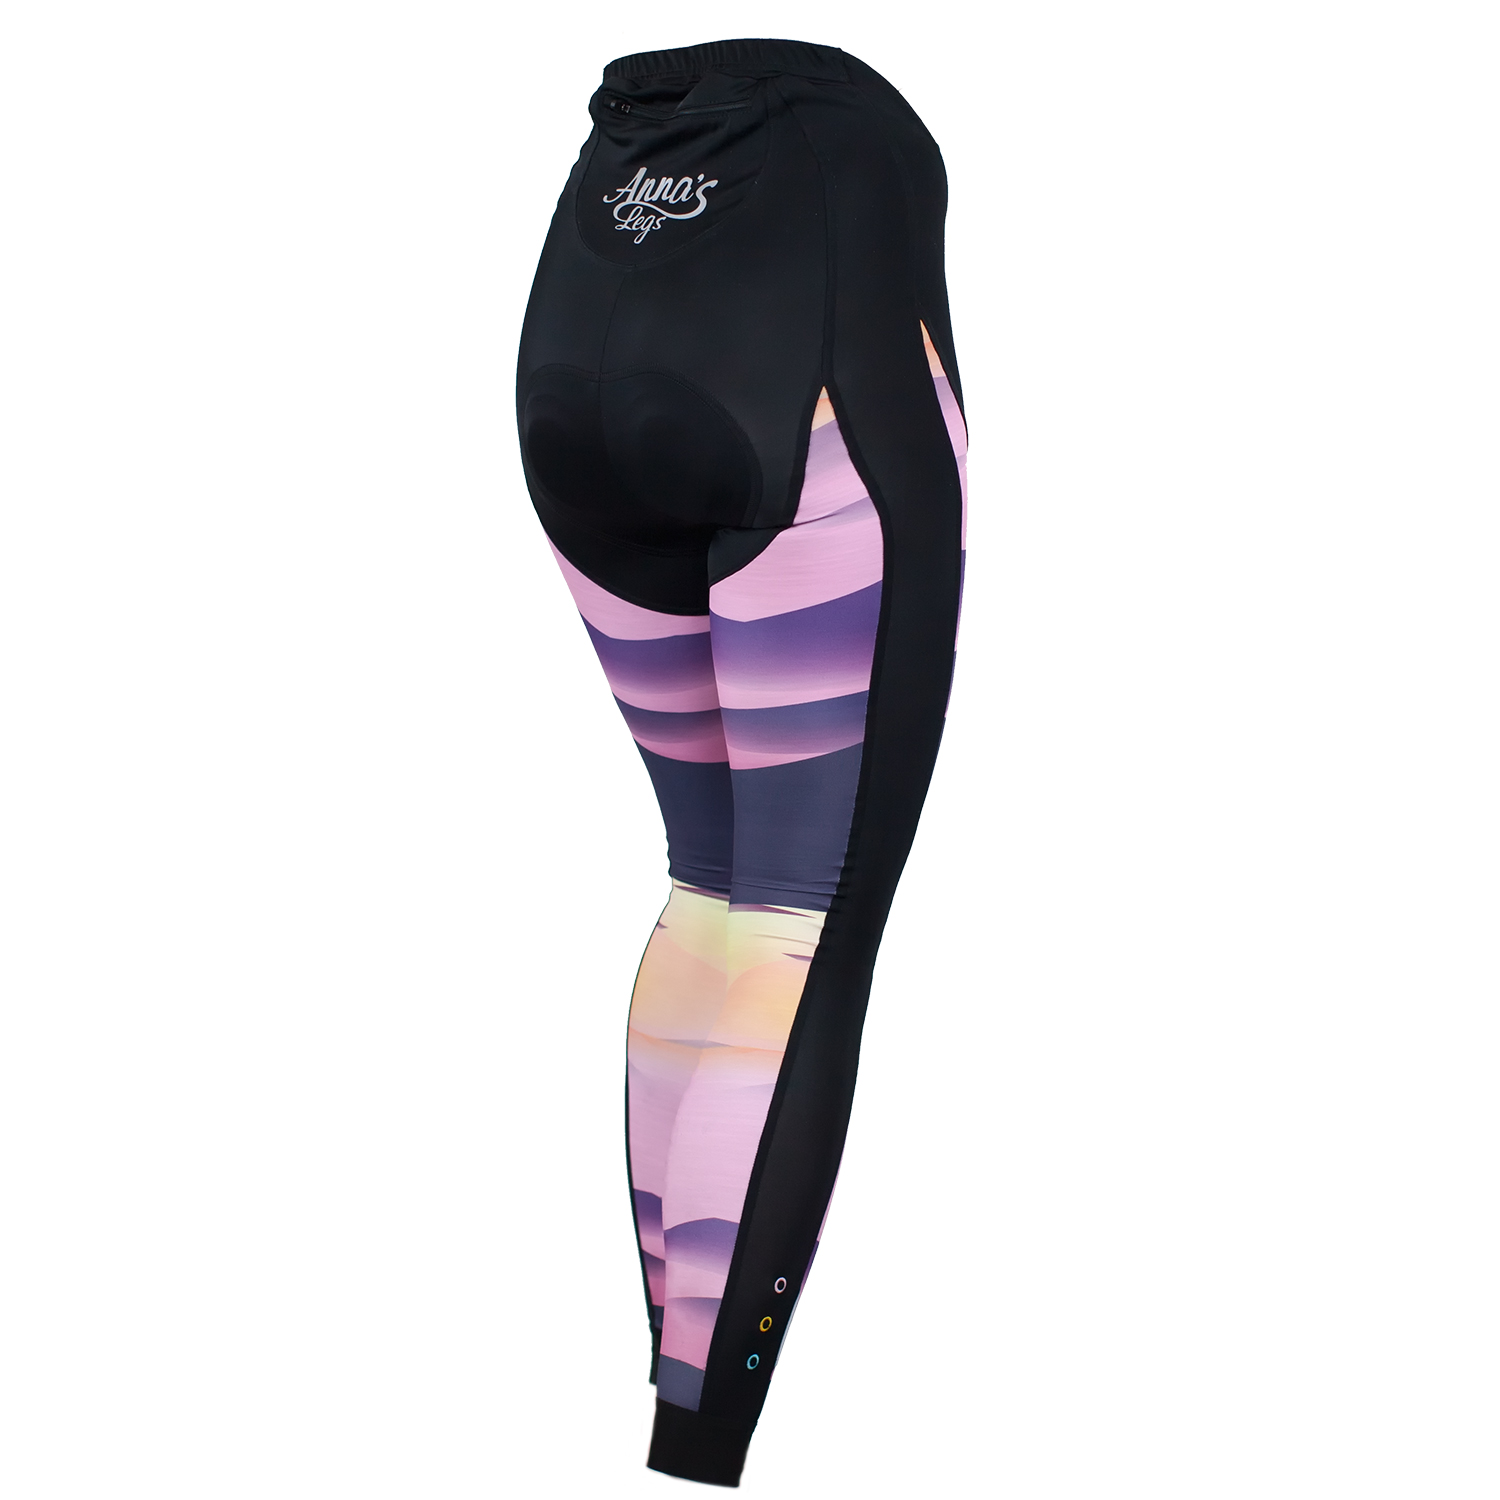 Anna's Legs Mountain Sunset Padded Leggings £89    Designer and presenter Anna Glowinski's re-emergence with the new Anna's Legs brand has been one of the highlights of the women's cycling kit year. Her new range of padded leggings has attracted rave reviews and matches technical quality and fit with unique colours and designs. Love!